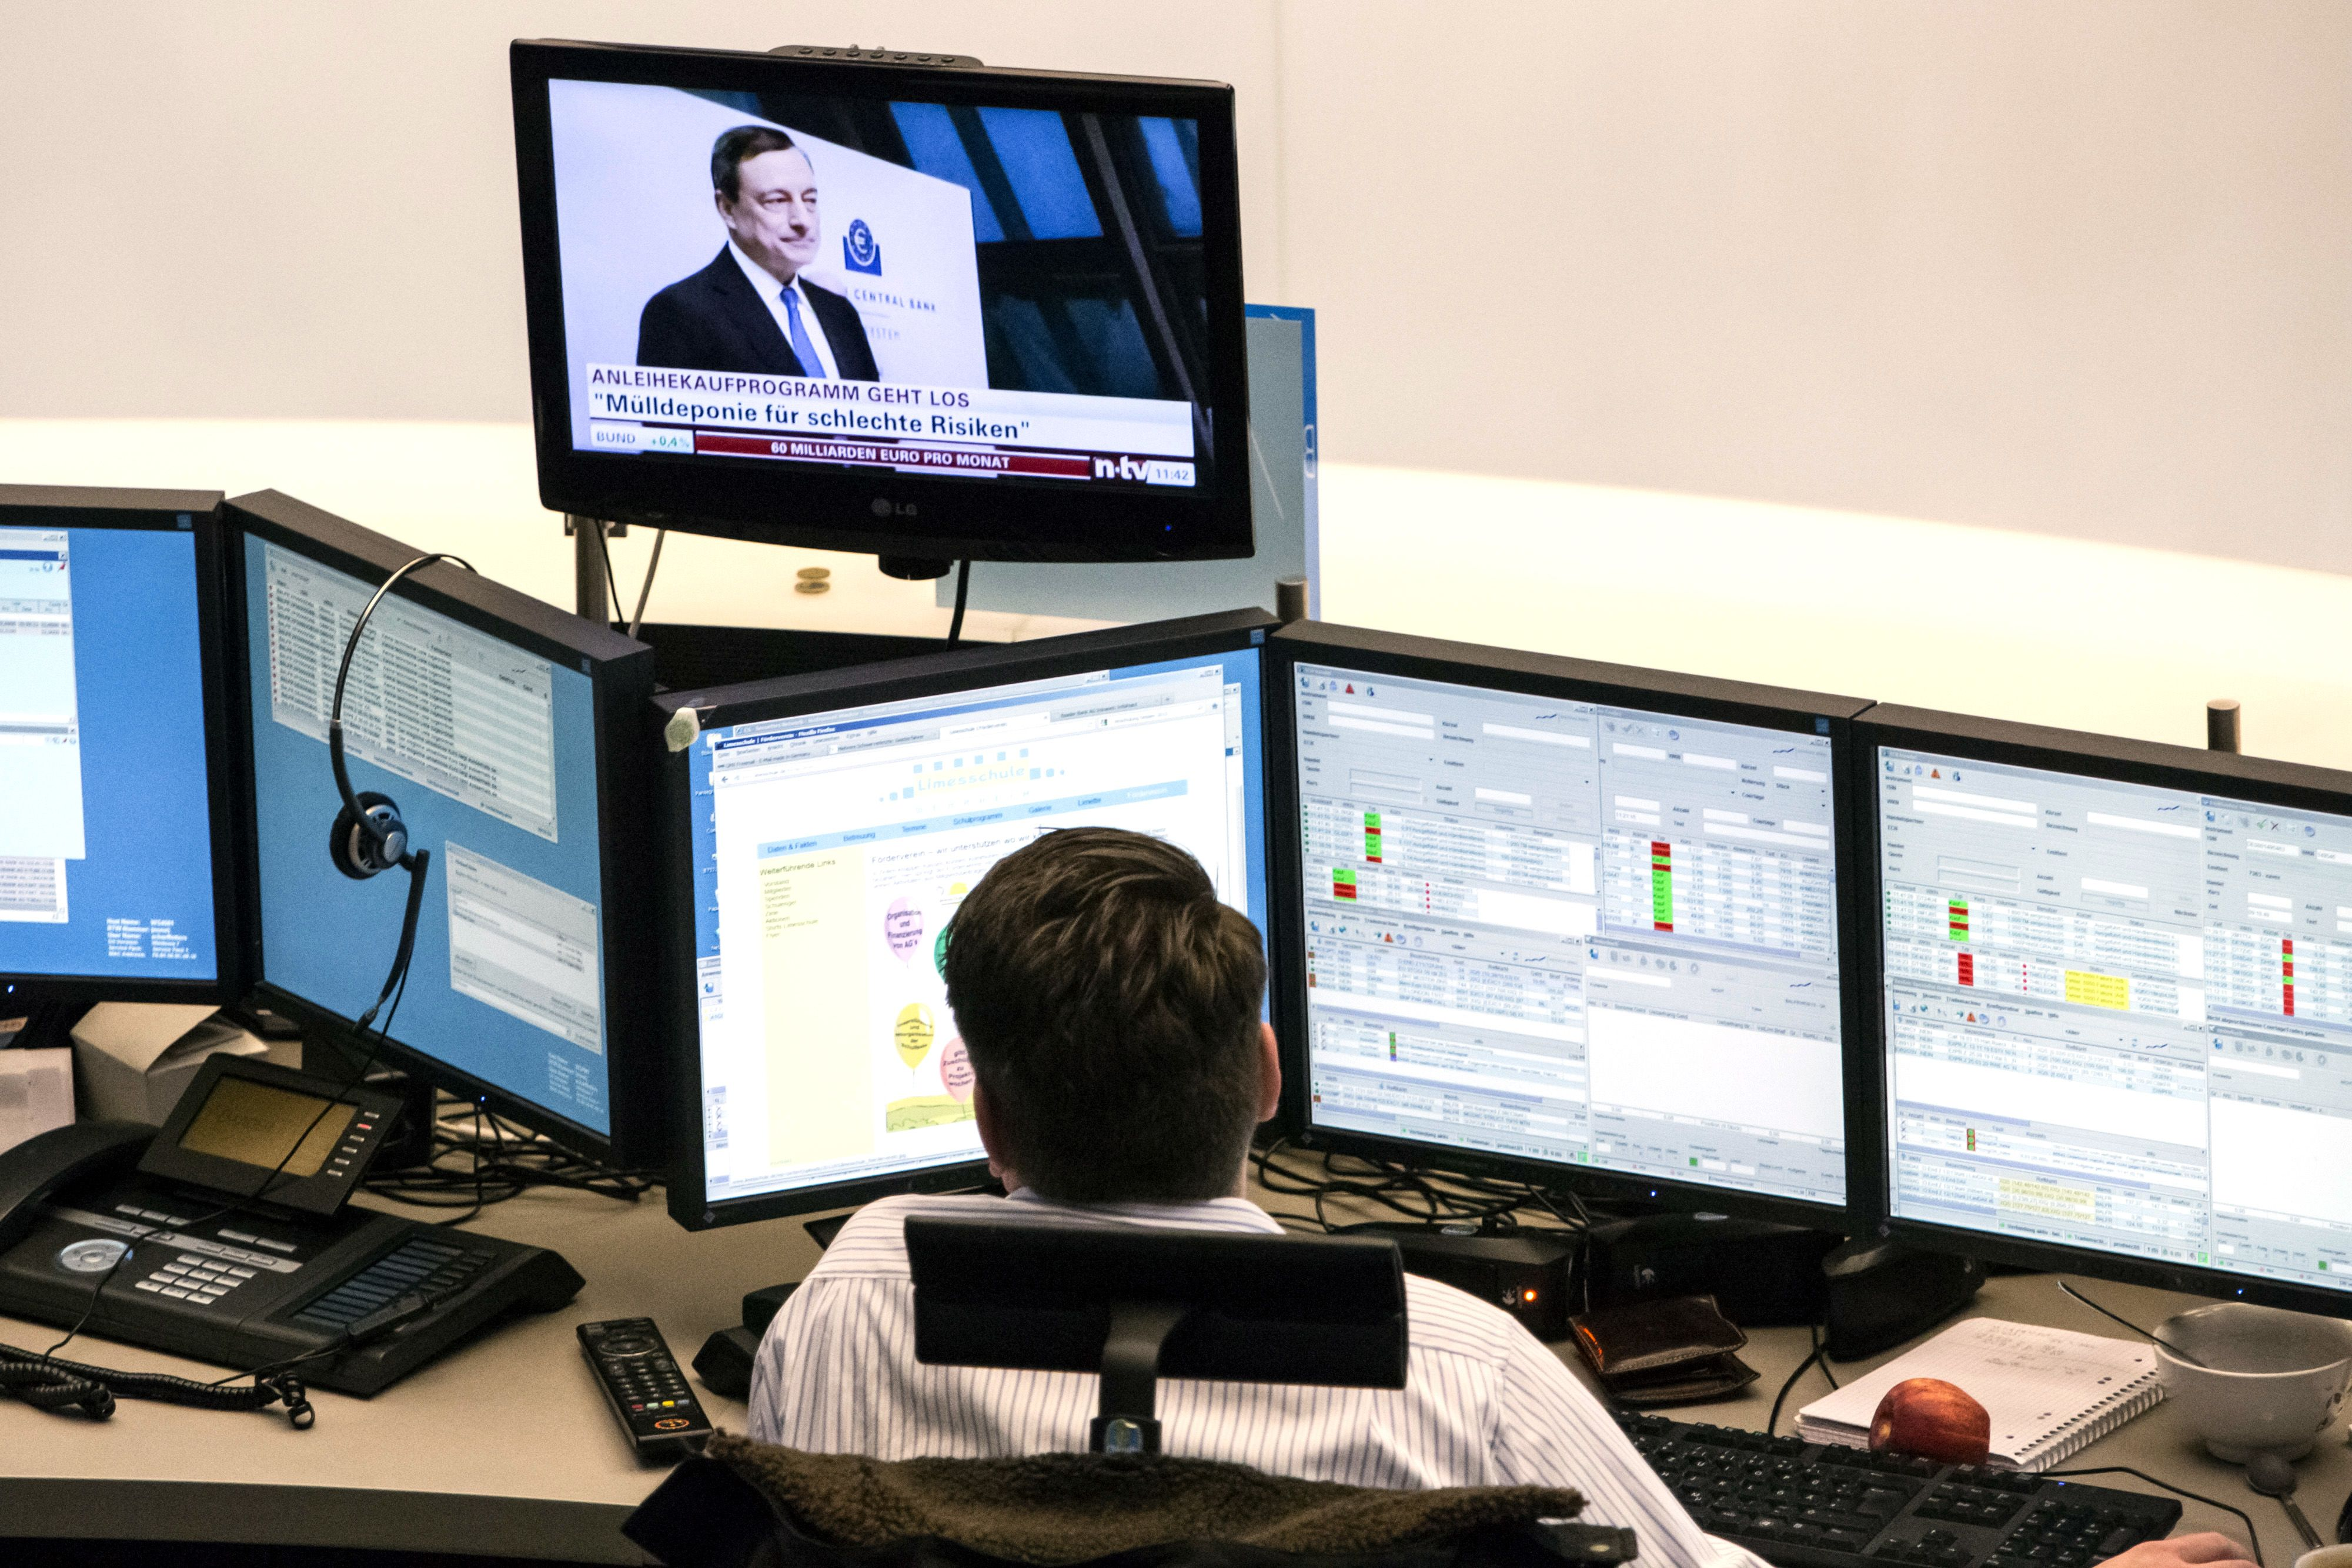 European markets slightly higher as traders look ahead to ECB decision